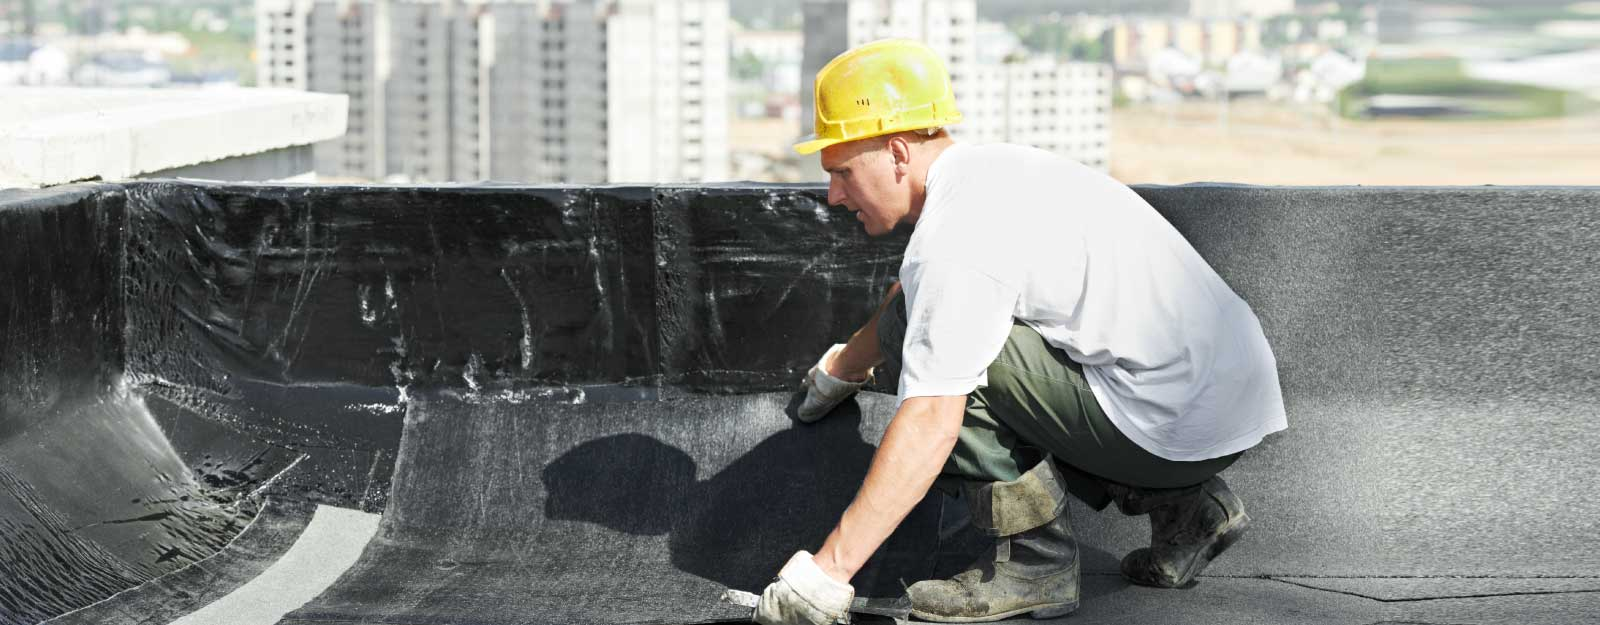 Commercial-roof-maintenance-software-1600